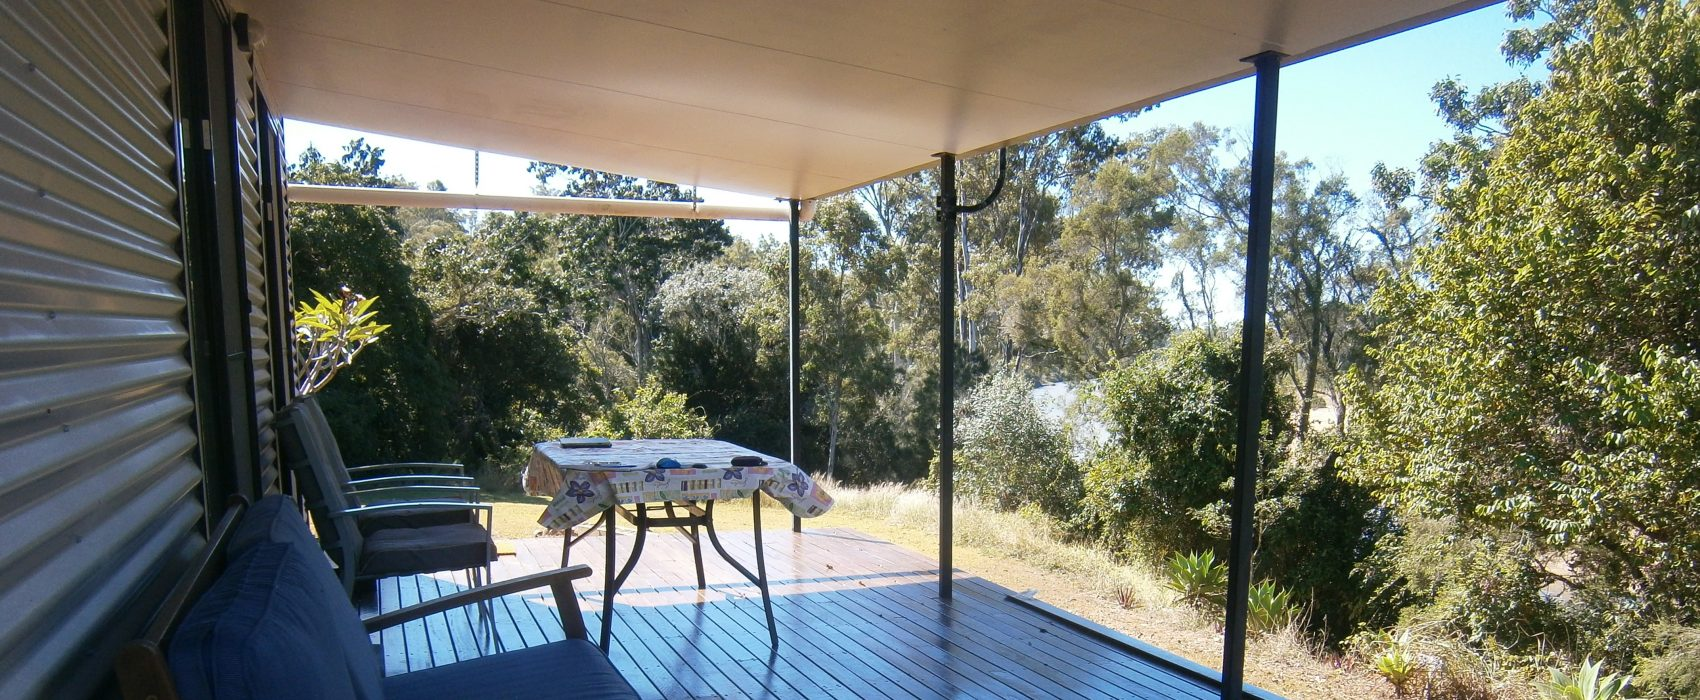 The cabin decking